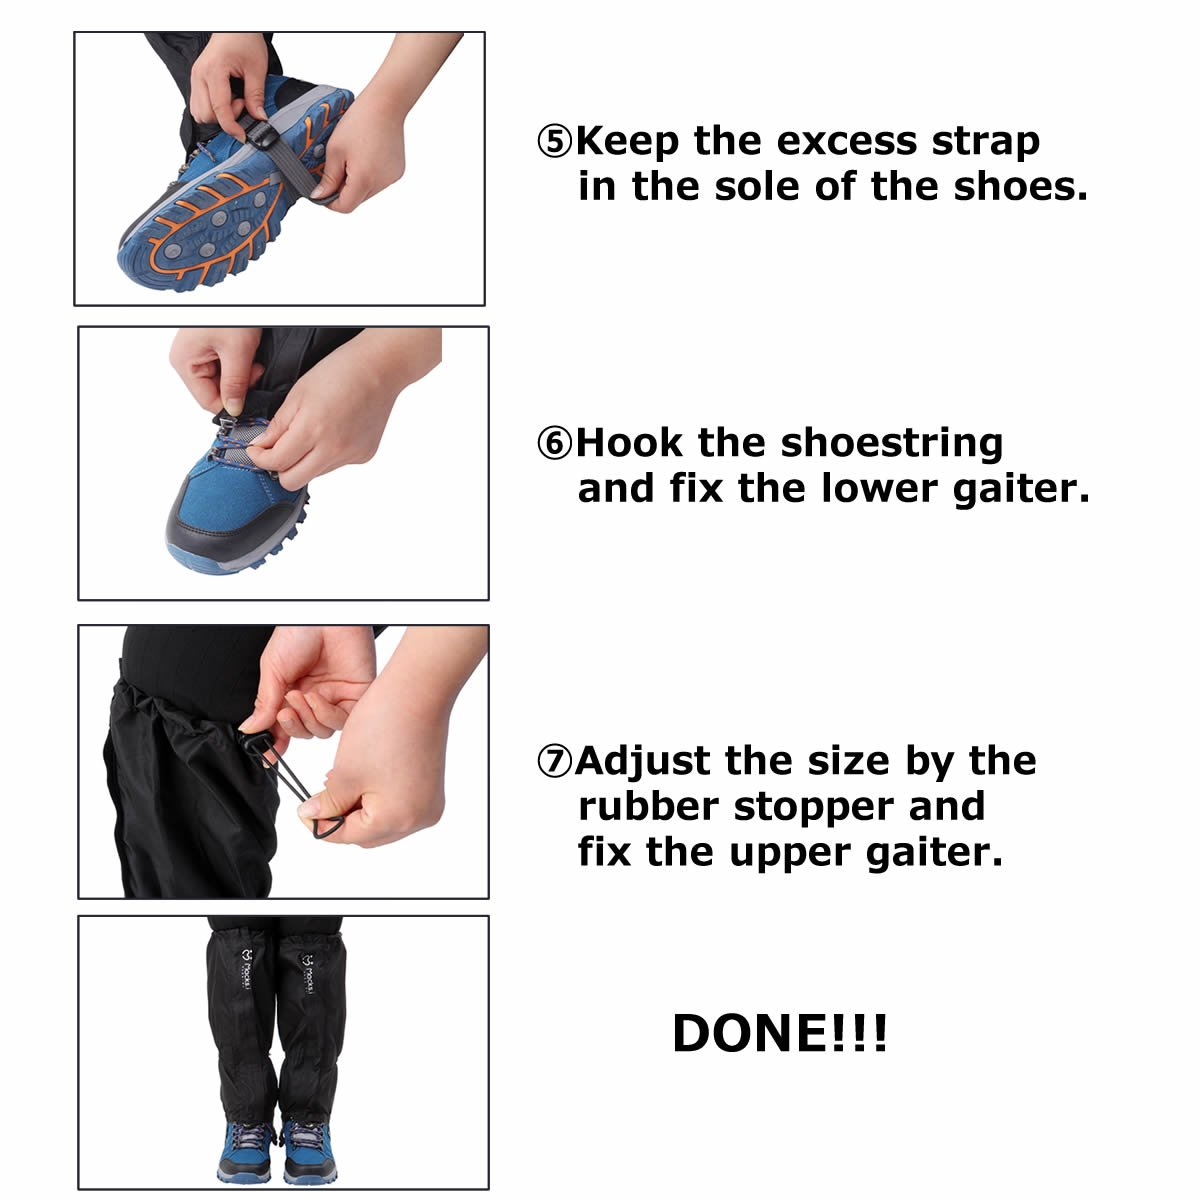 Macks.i Outdoor Unisex Waterproof Camping Hiking Gaiters High Leg Cover 1pair with a Free Shoe Bag by Macks.i (Image #5)